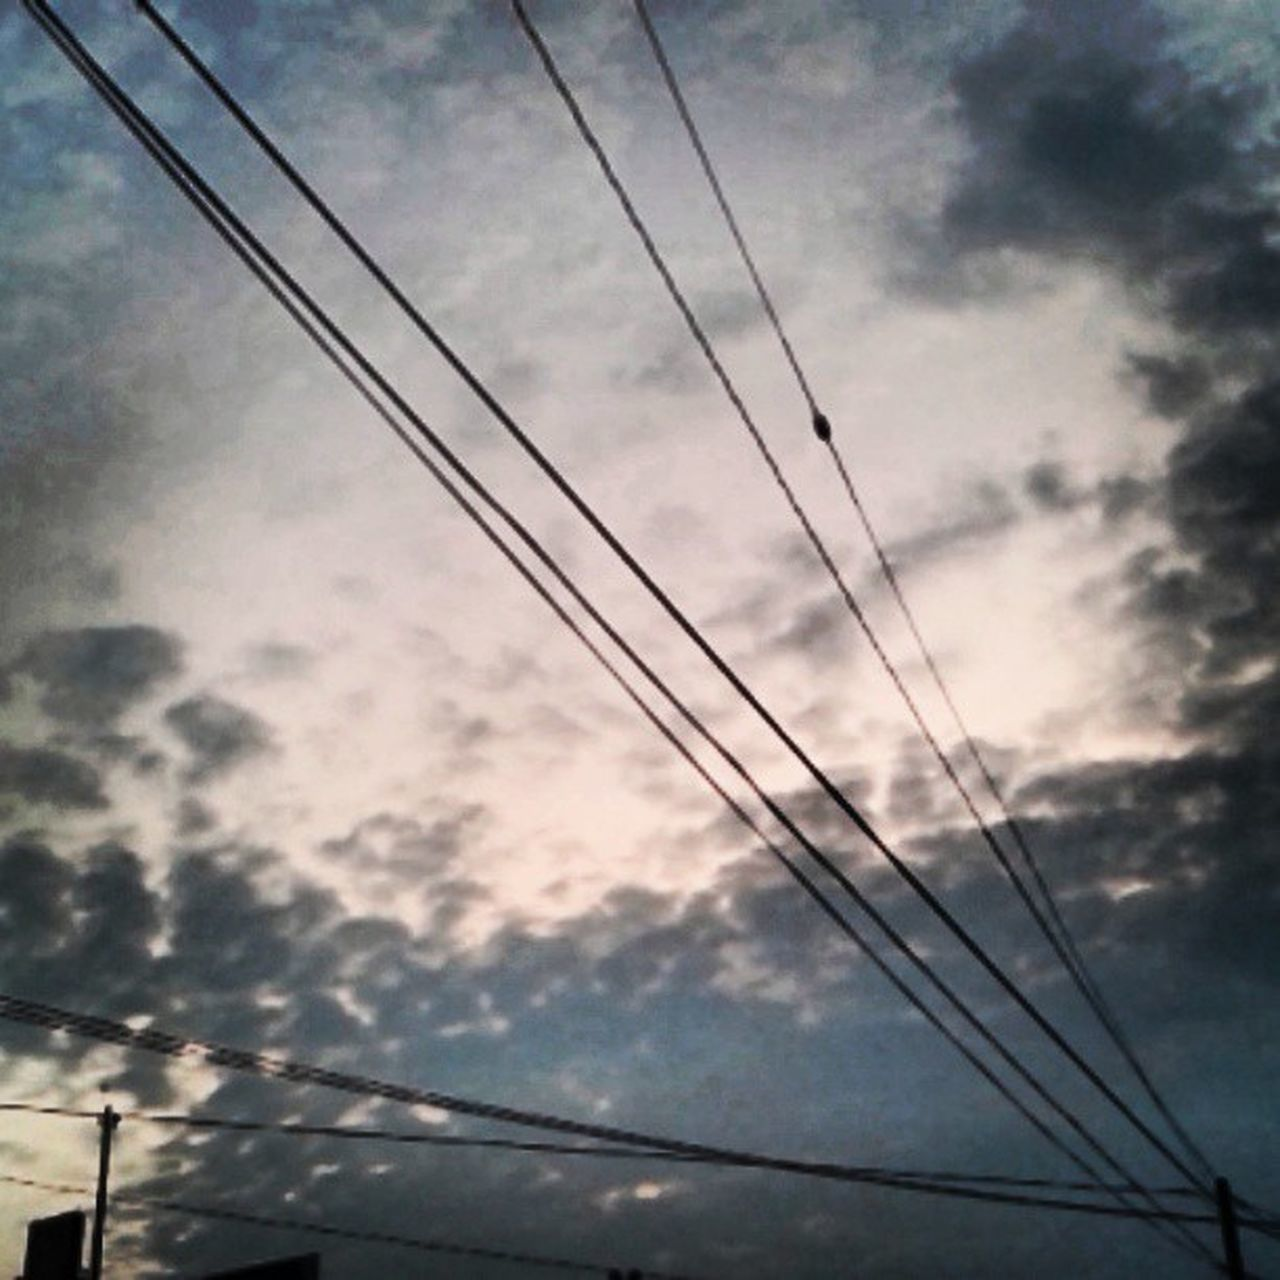 cable, sky, low angle view, power line, no people, power supply, connection, electricity, cloud - sky, electricity pylon, outdoors, silhouette, day, nature, telephone line